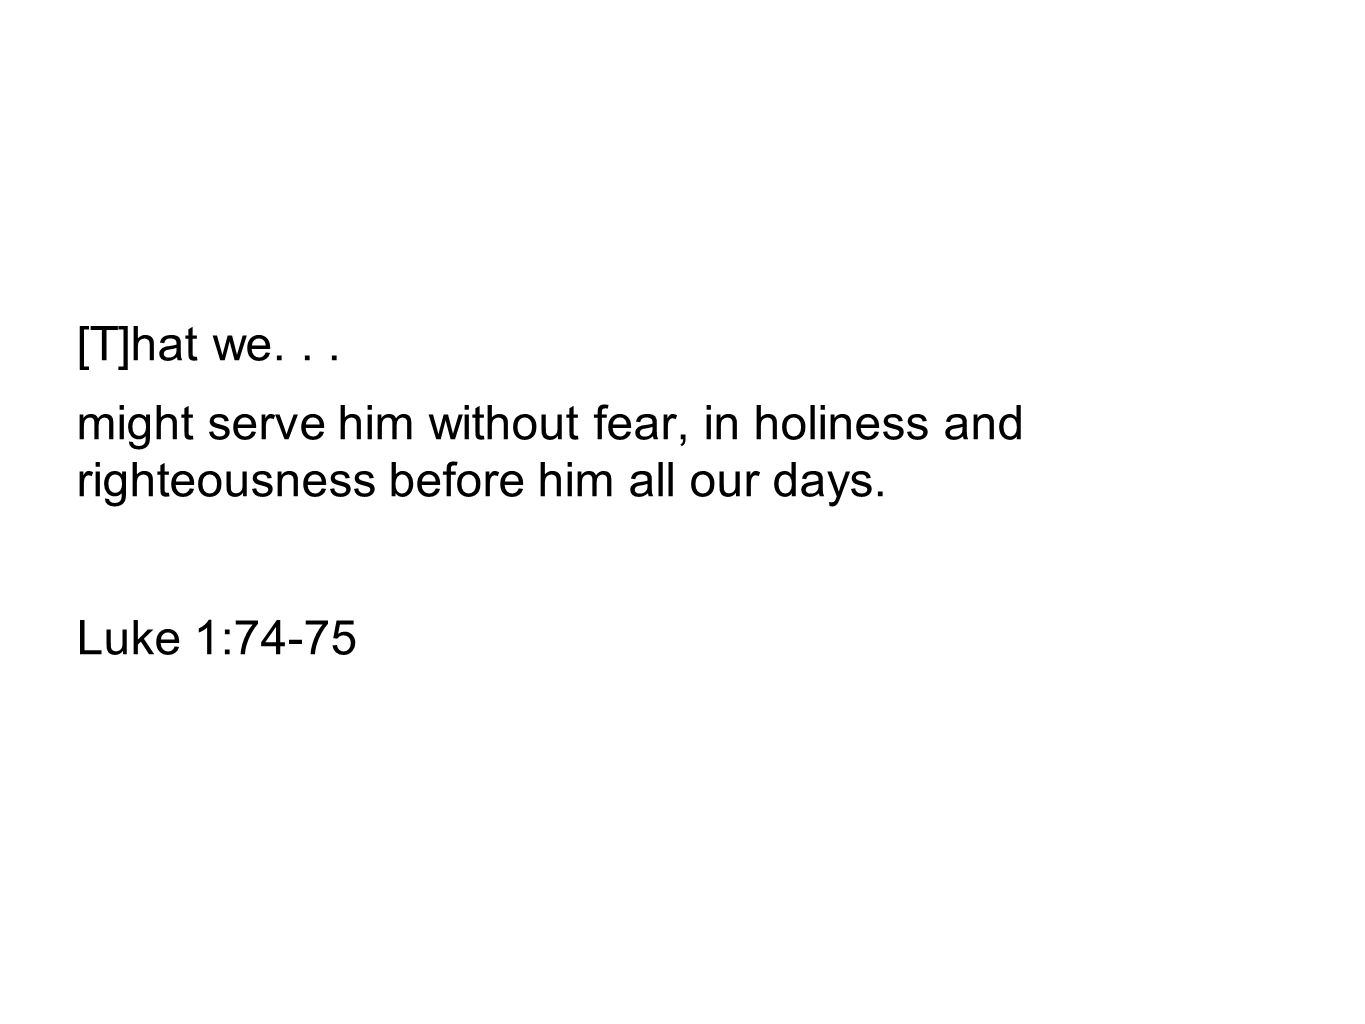 [T]hat we. . . might serve him without fear, in holiness and righteousness before him all our days.